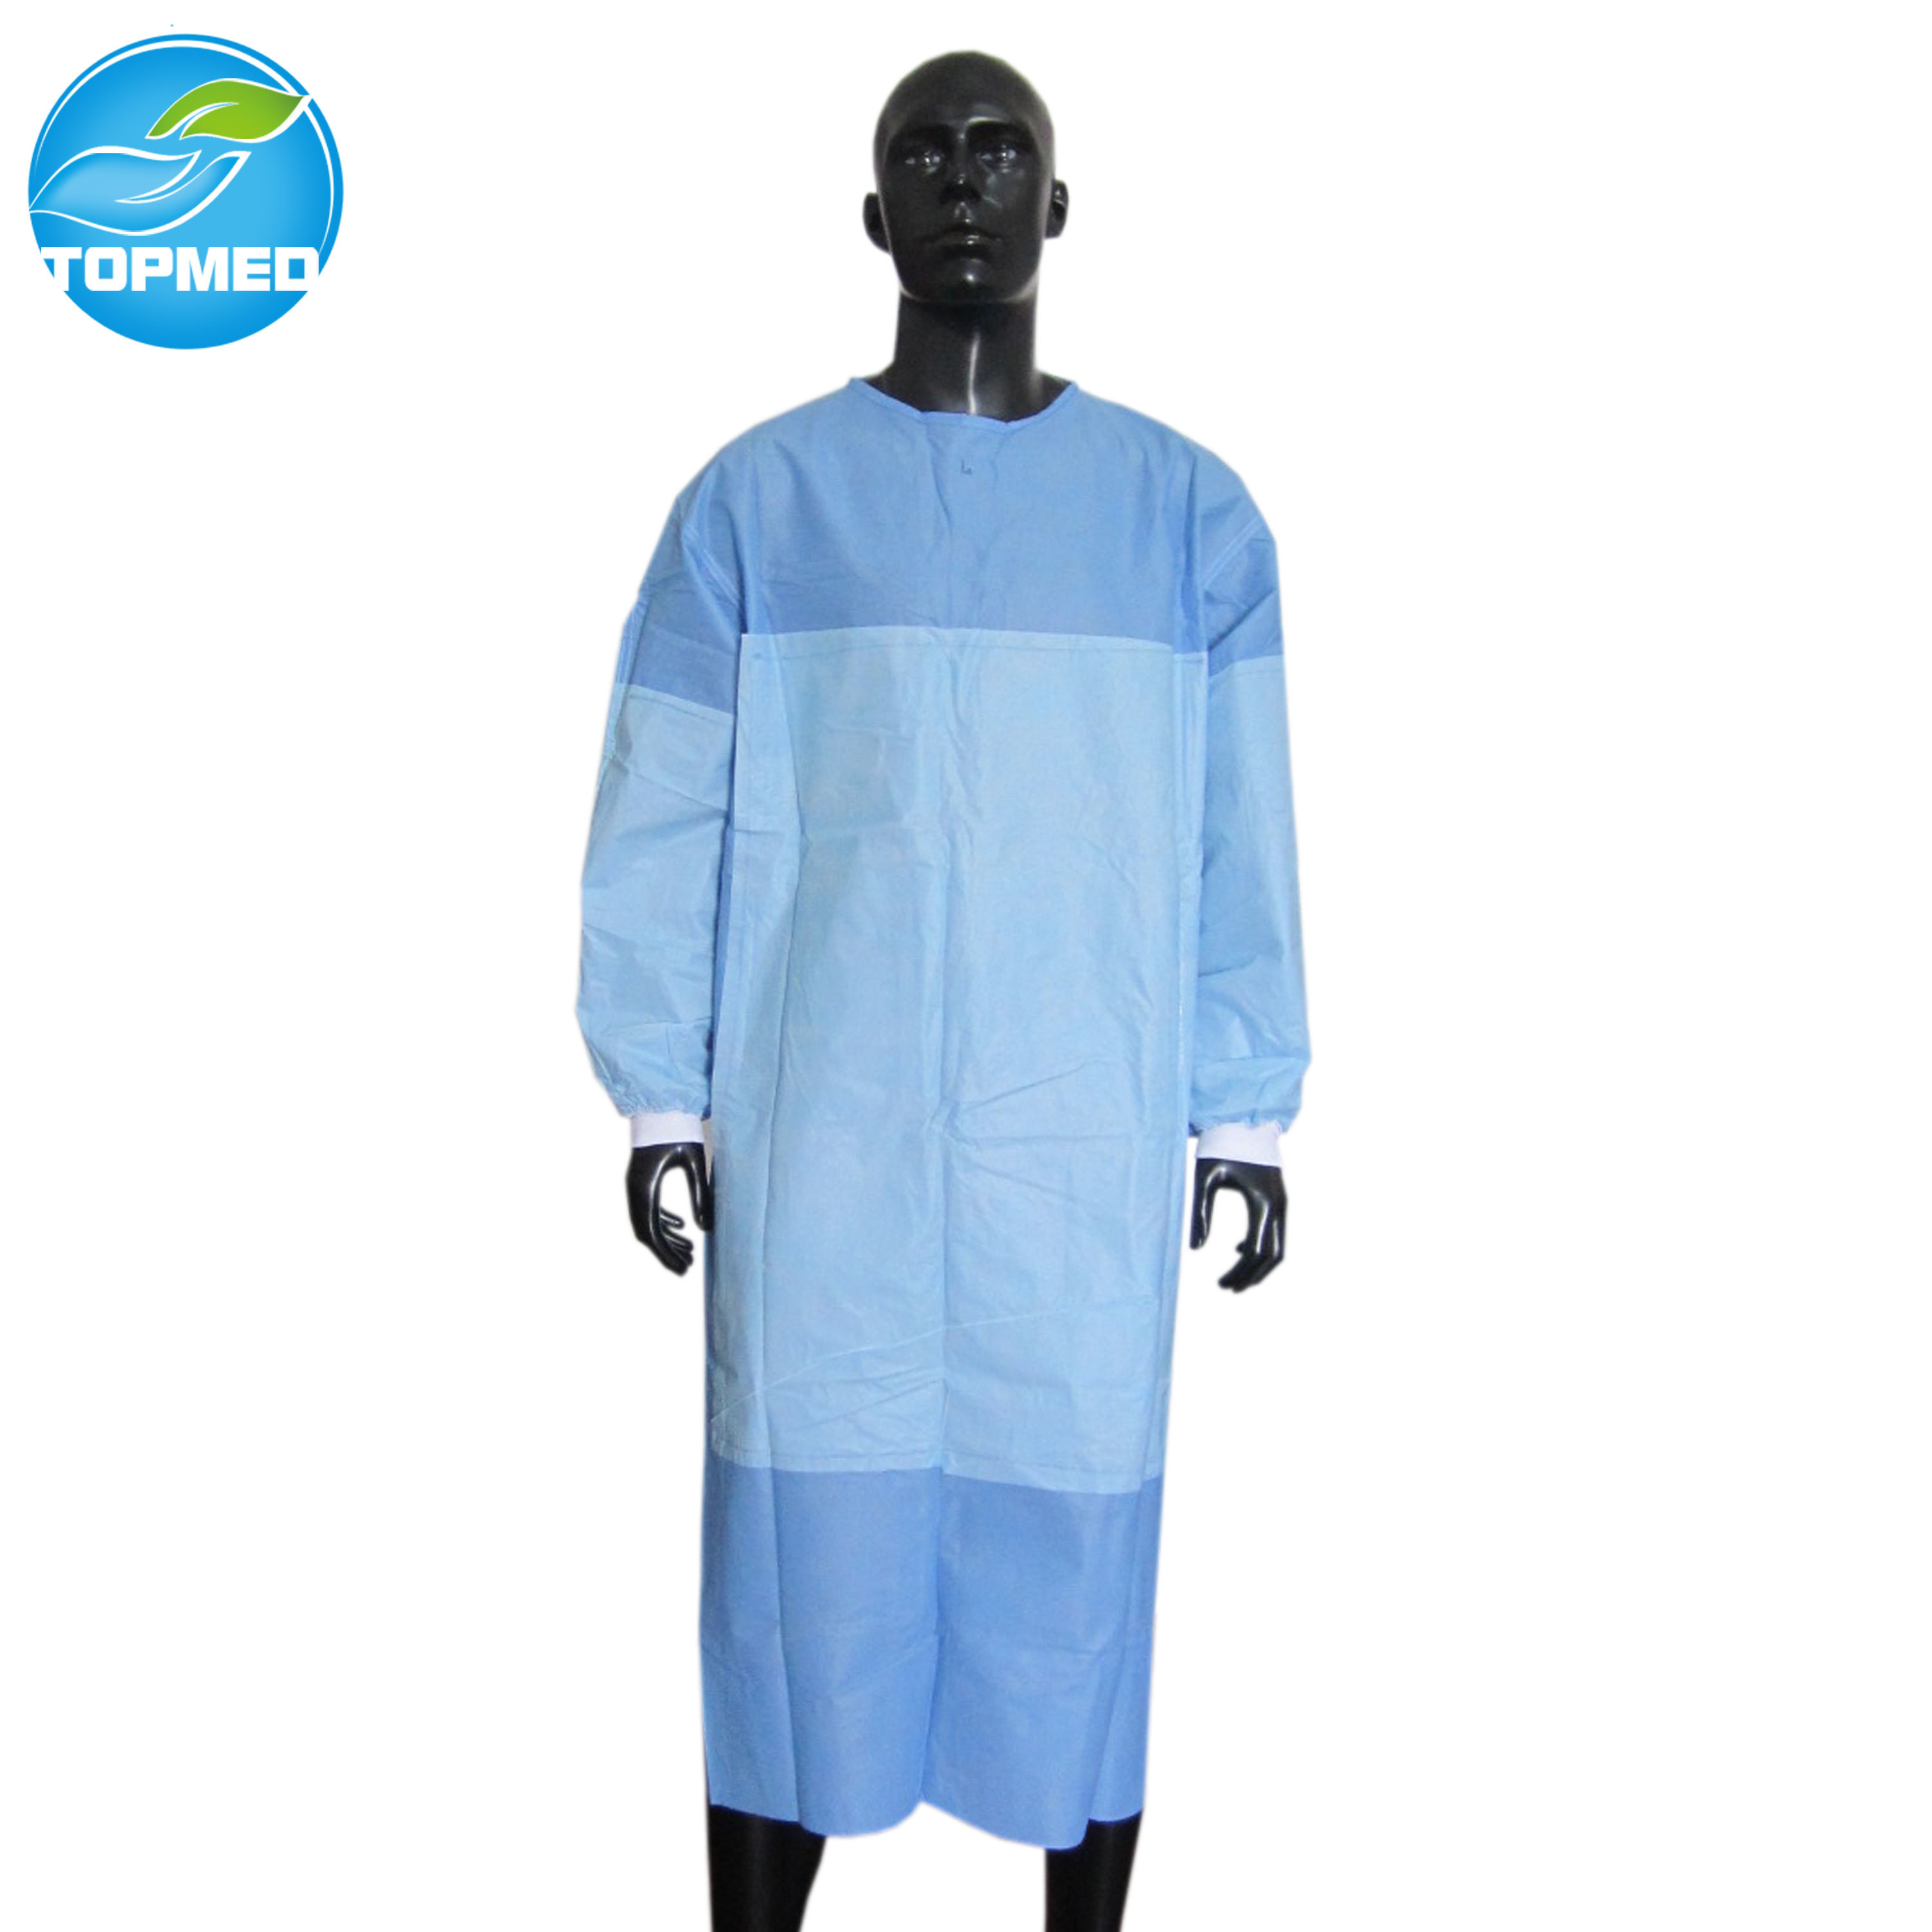 Disposable Surgical Gown Factory, China Disposable Surgical Gown ...